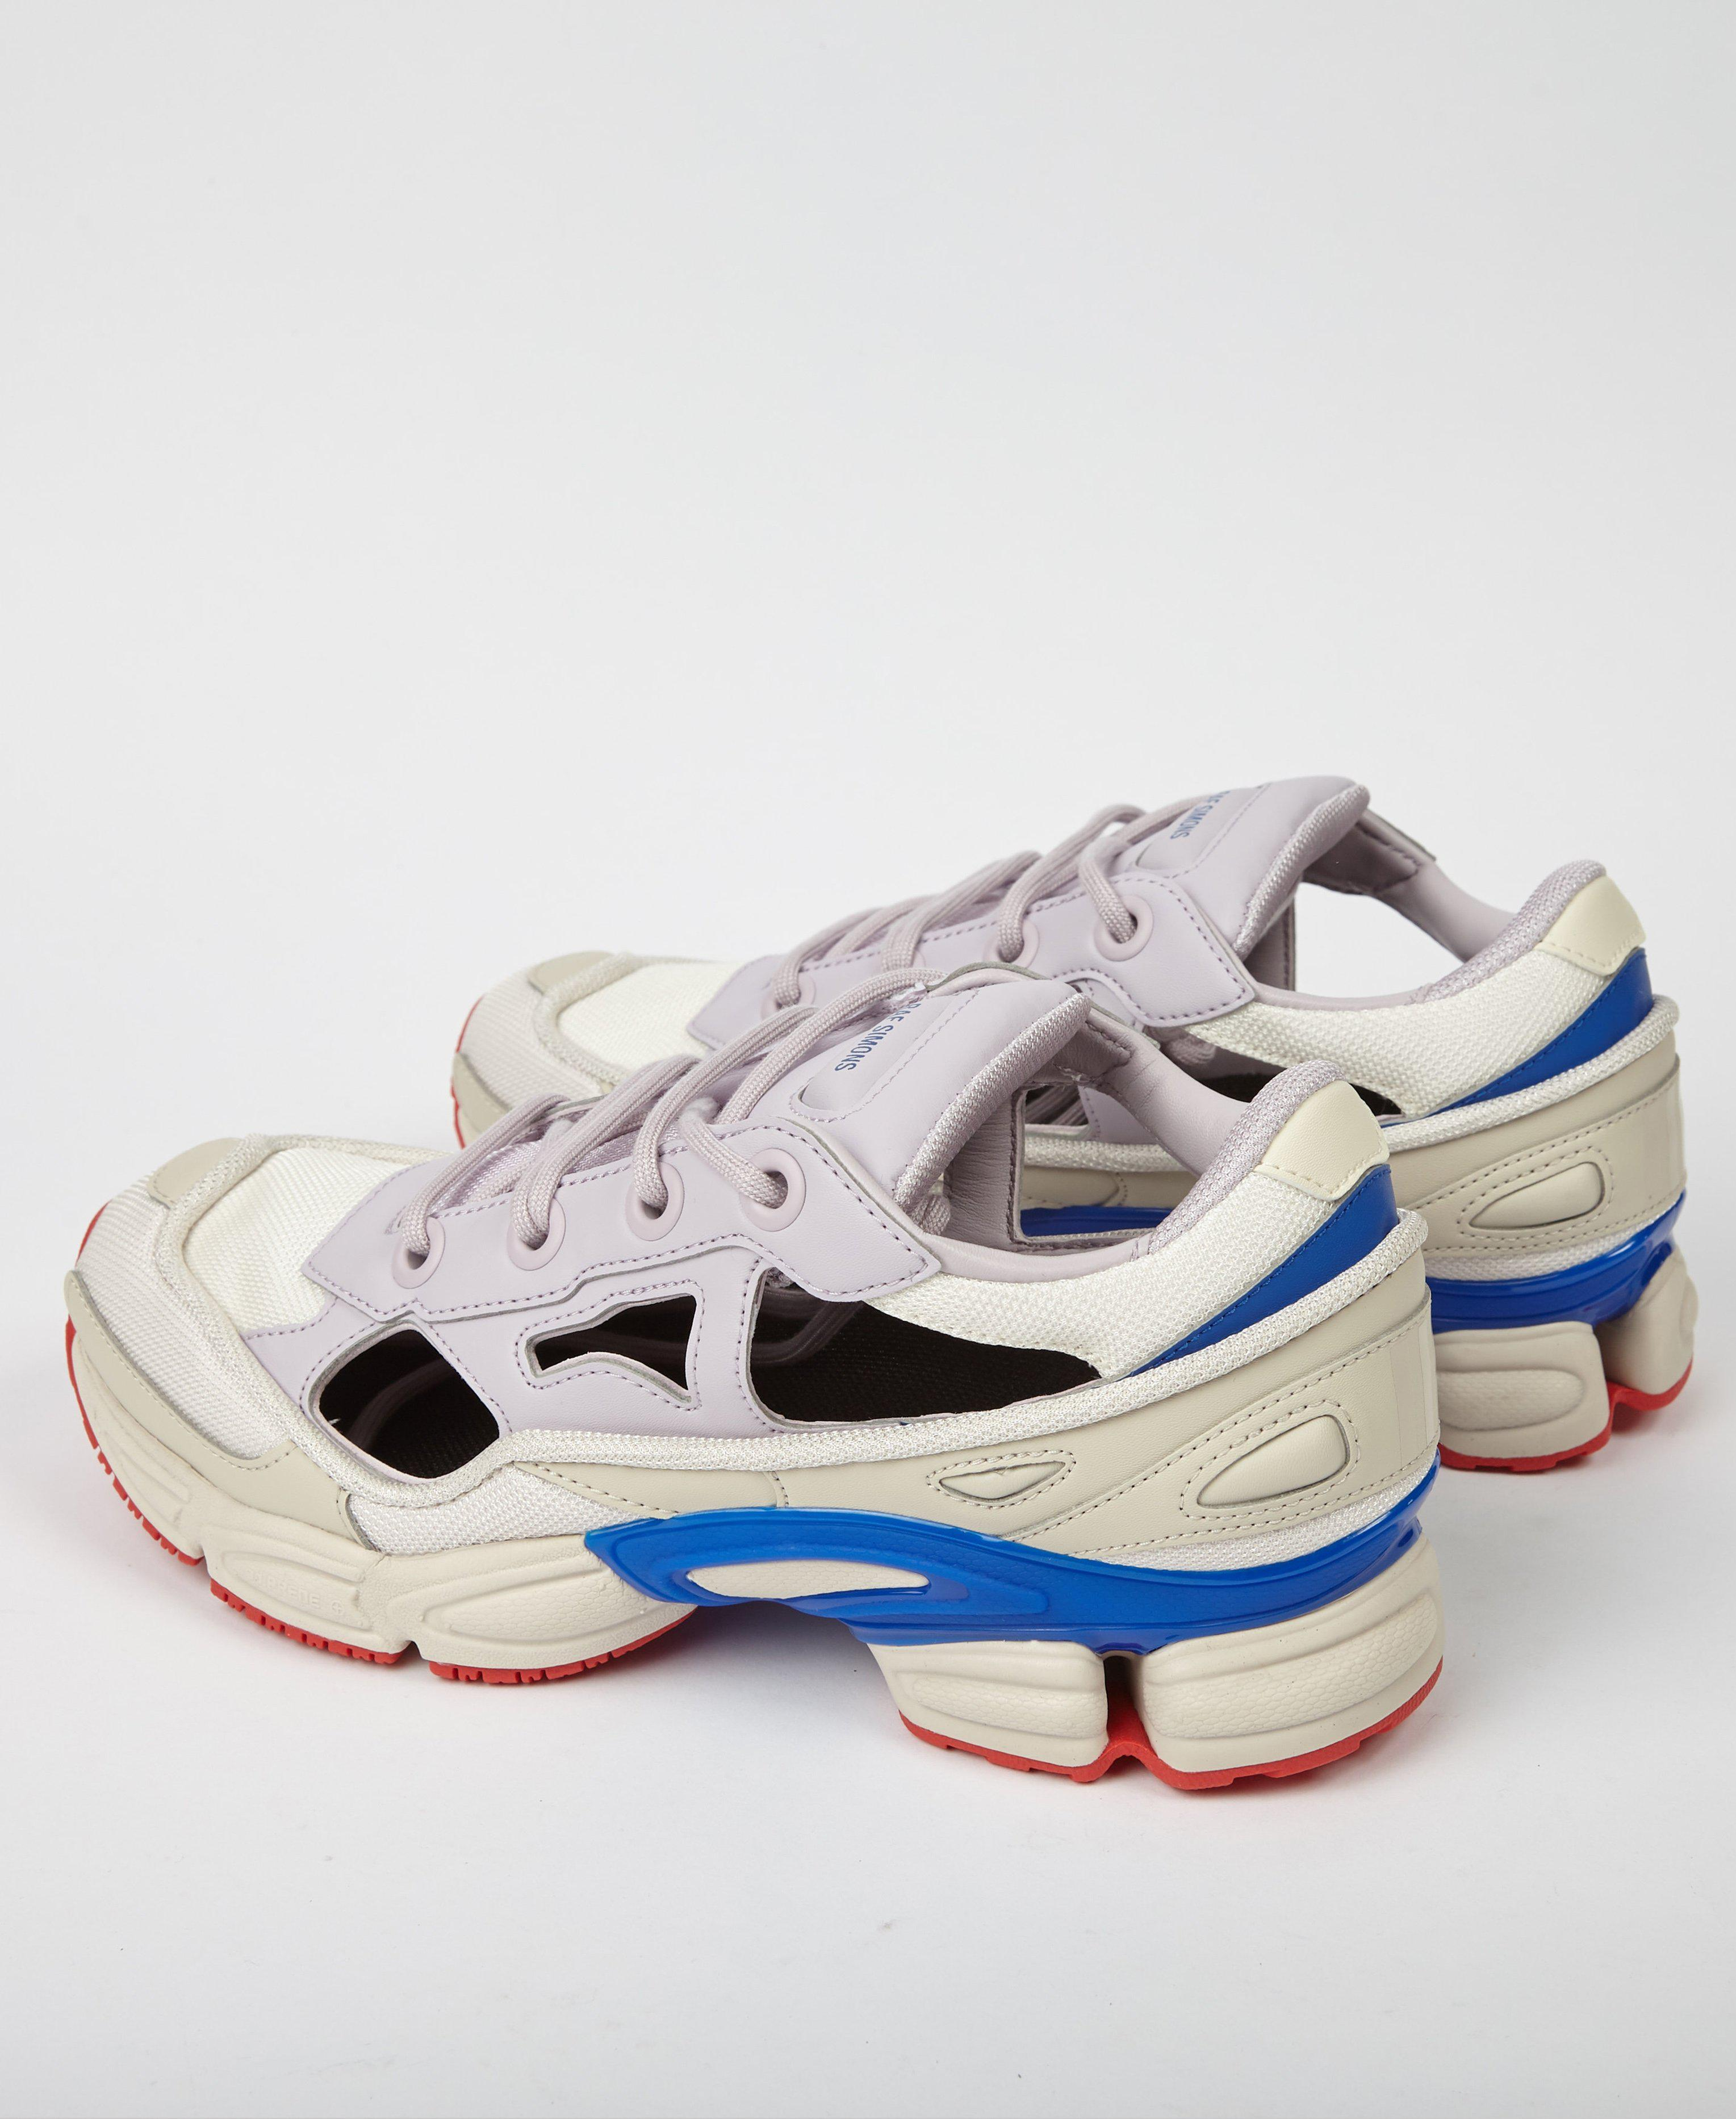 big sale 74fe3 43fa0 ... so cheap Adidas By Raf Simons Ozweego usa Rs Replicant for Men - Lyst  19e74 96505 ...